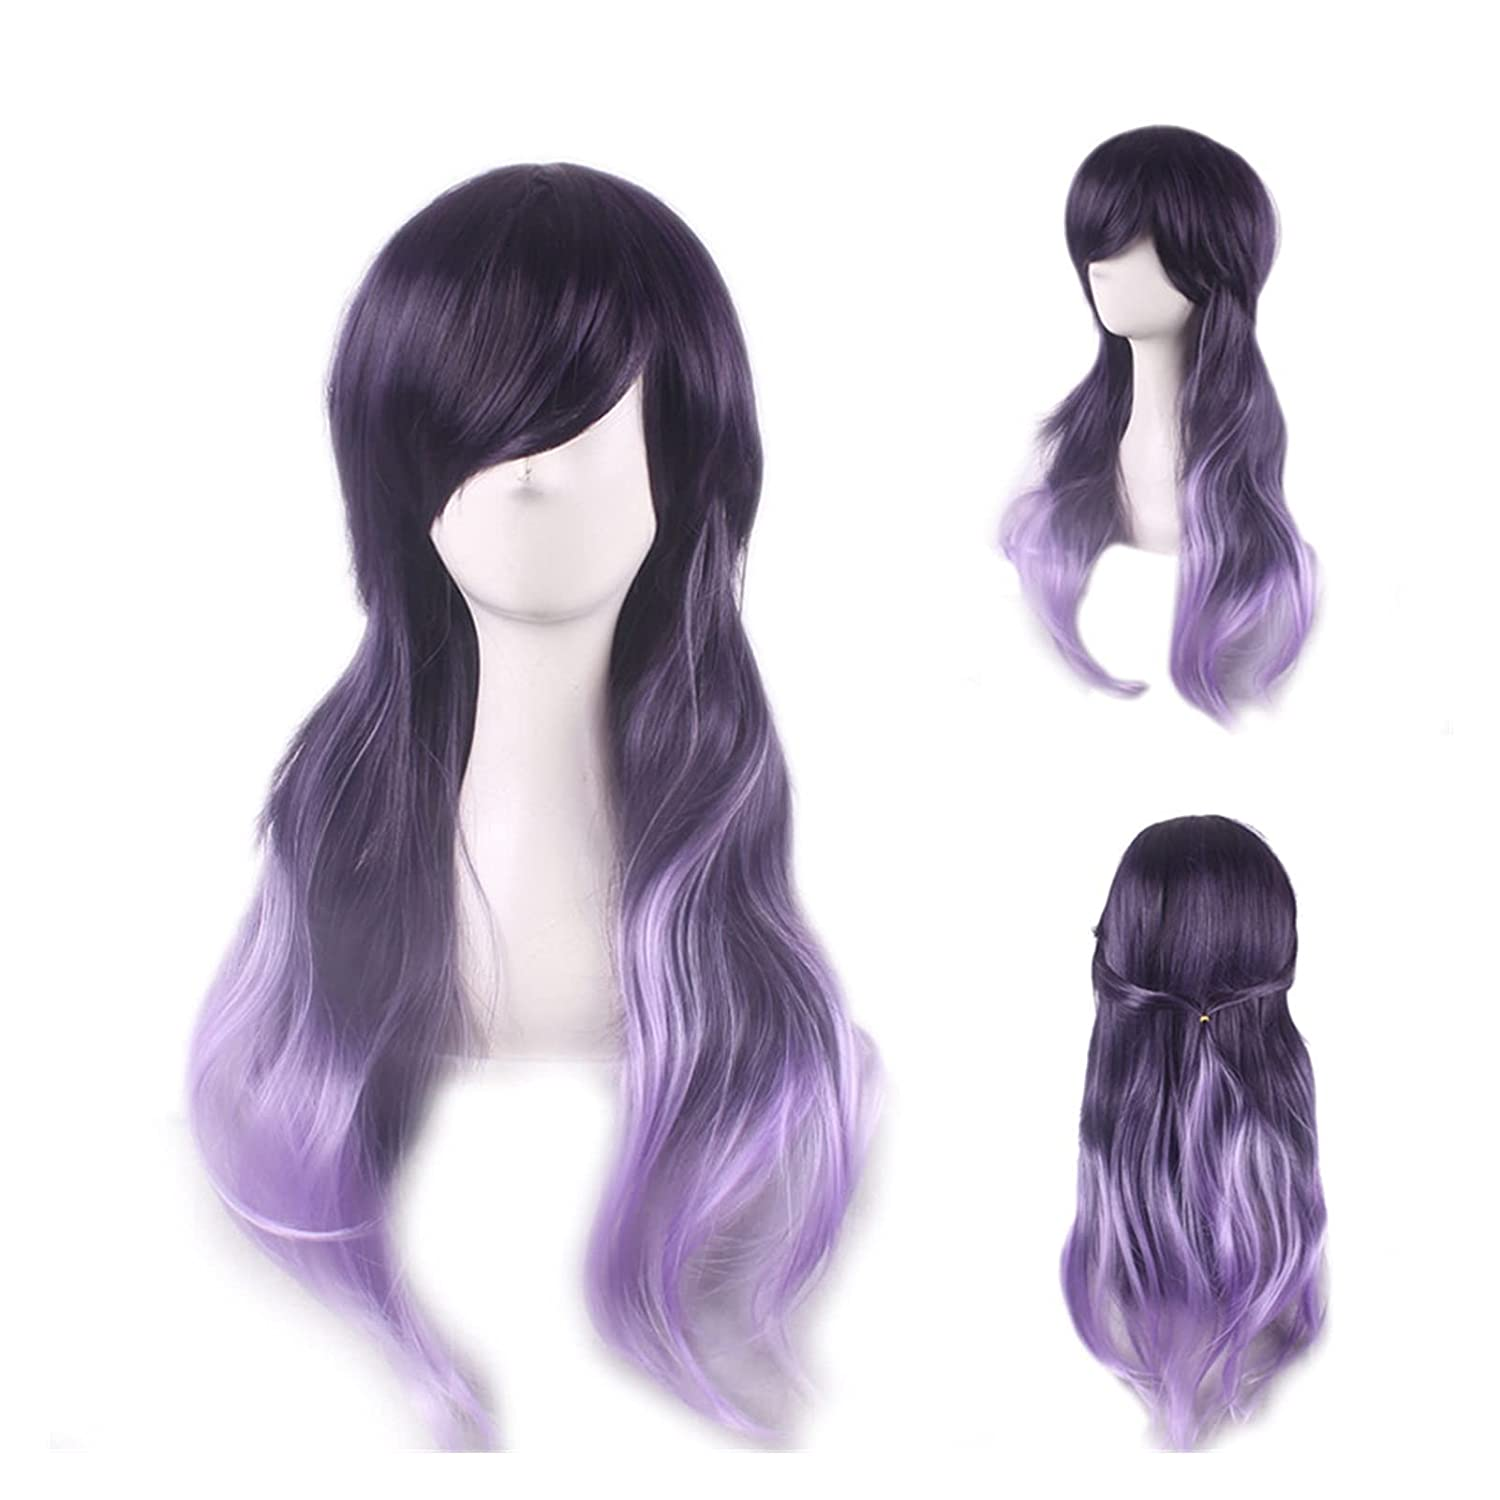 Chtom Choice COS Pseudo Purple Long Gradient Curly Hair Cheap mail order sales